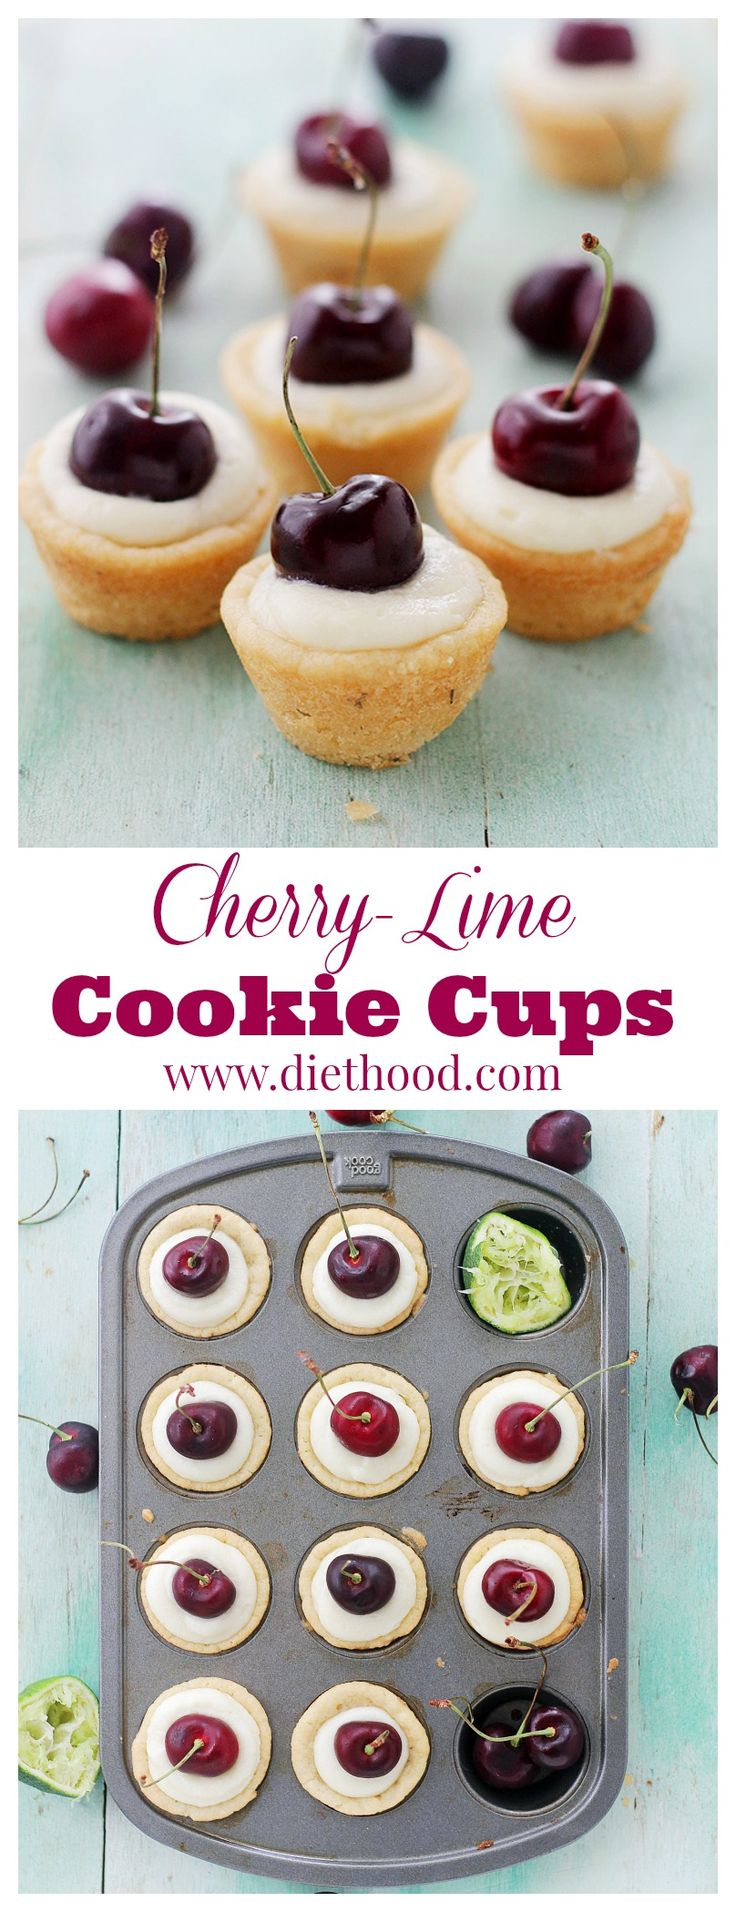 Cherry-Lime Mascarpone Cookie Cups | www.diethood.com | Sugar-cookie dough baked into a cup and filled with a creamy mascarpone mixture made with cherry liqueur and lime juice. | #recipe #dessert